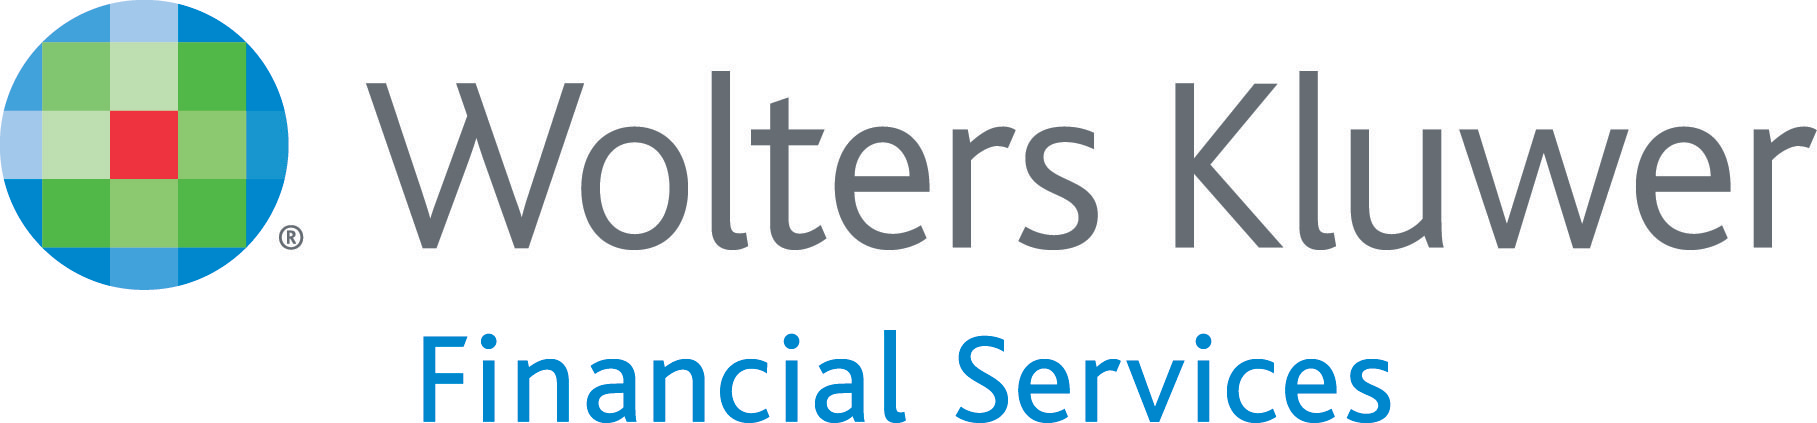 Wolters-Kluwer logo